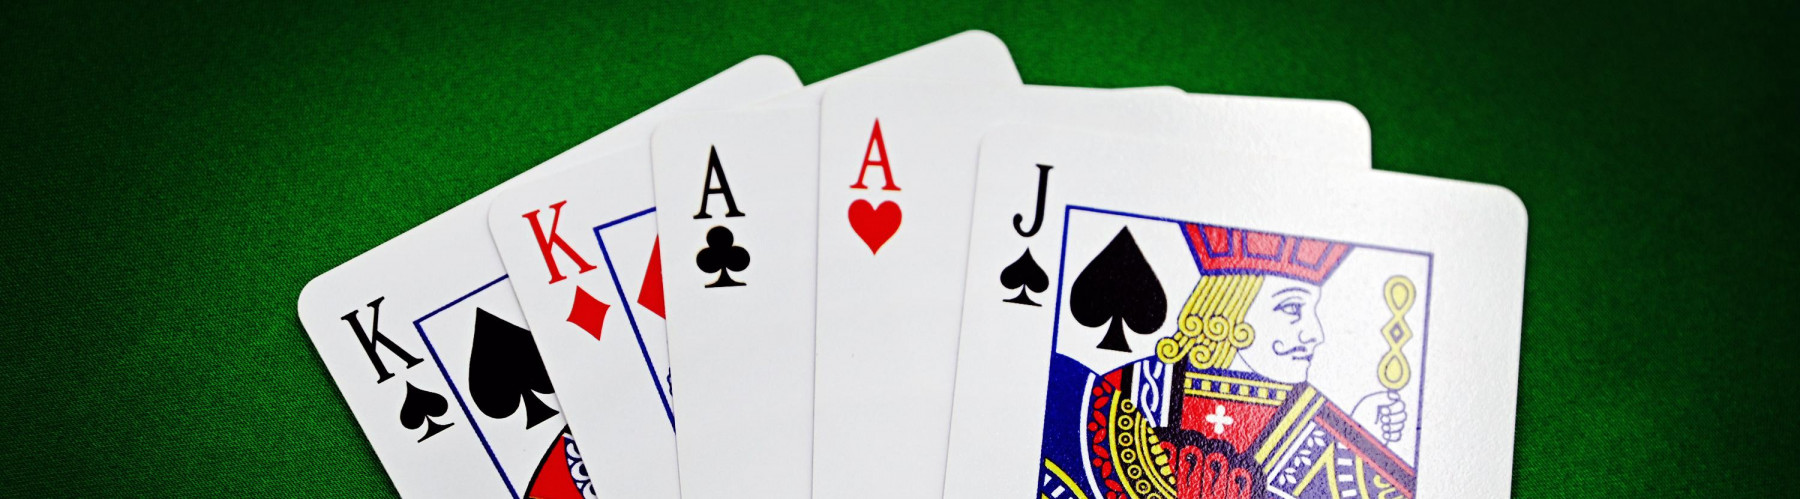 Levels of hands in the game of poker